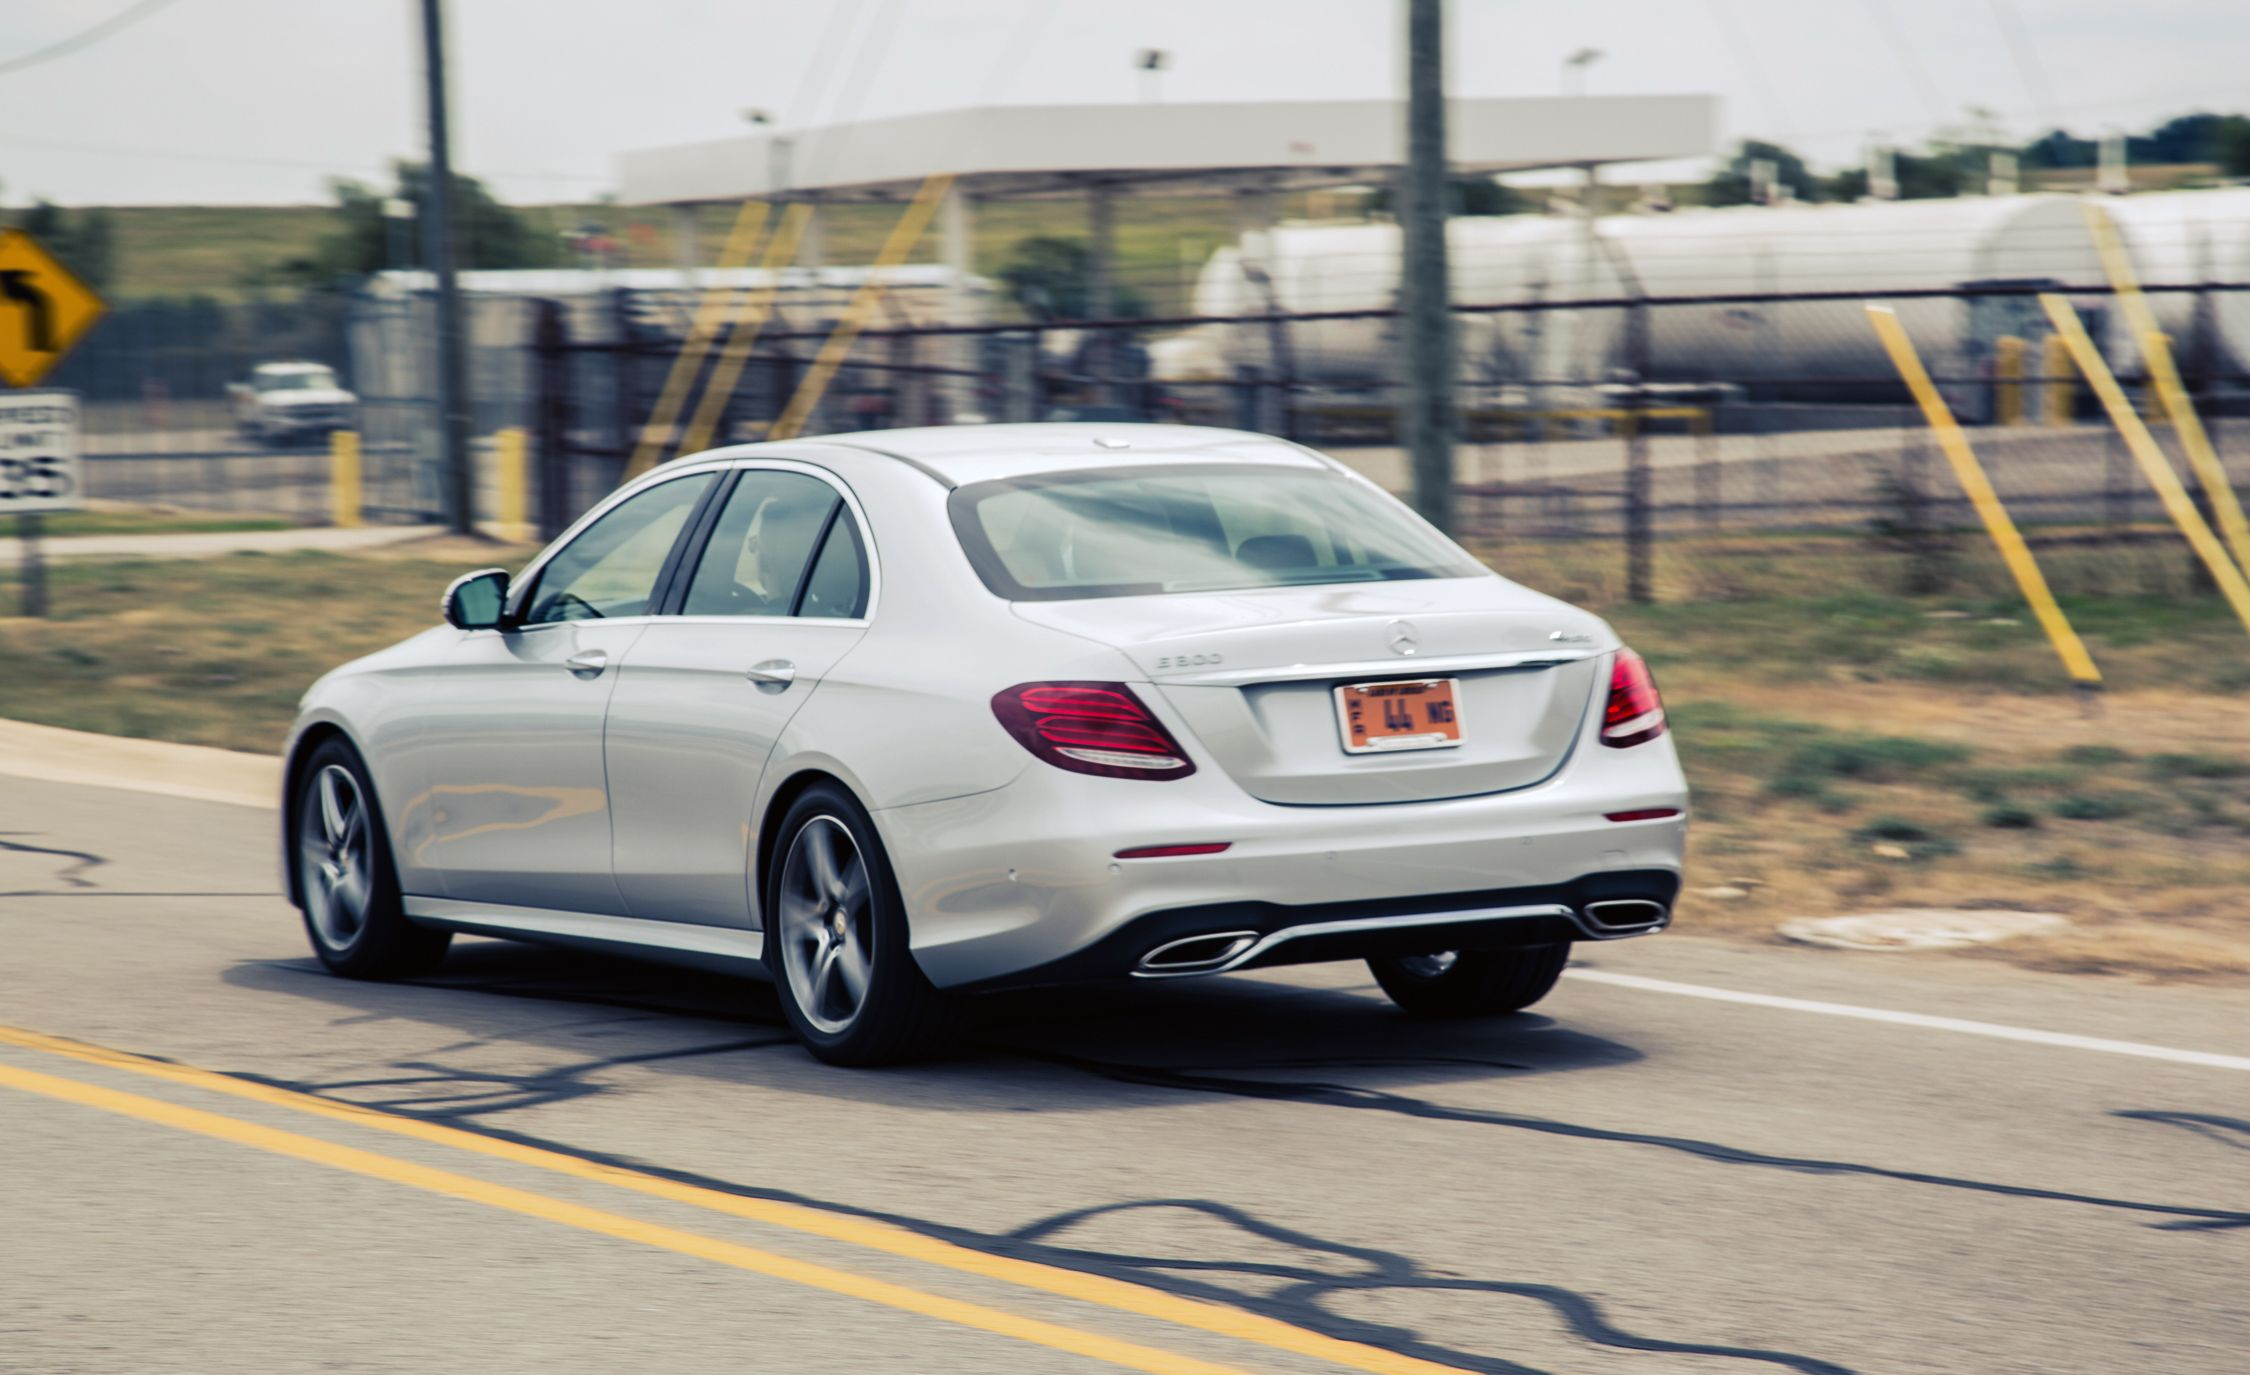 Mercedes-Benz E-Class: Determining the correct load limit